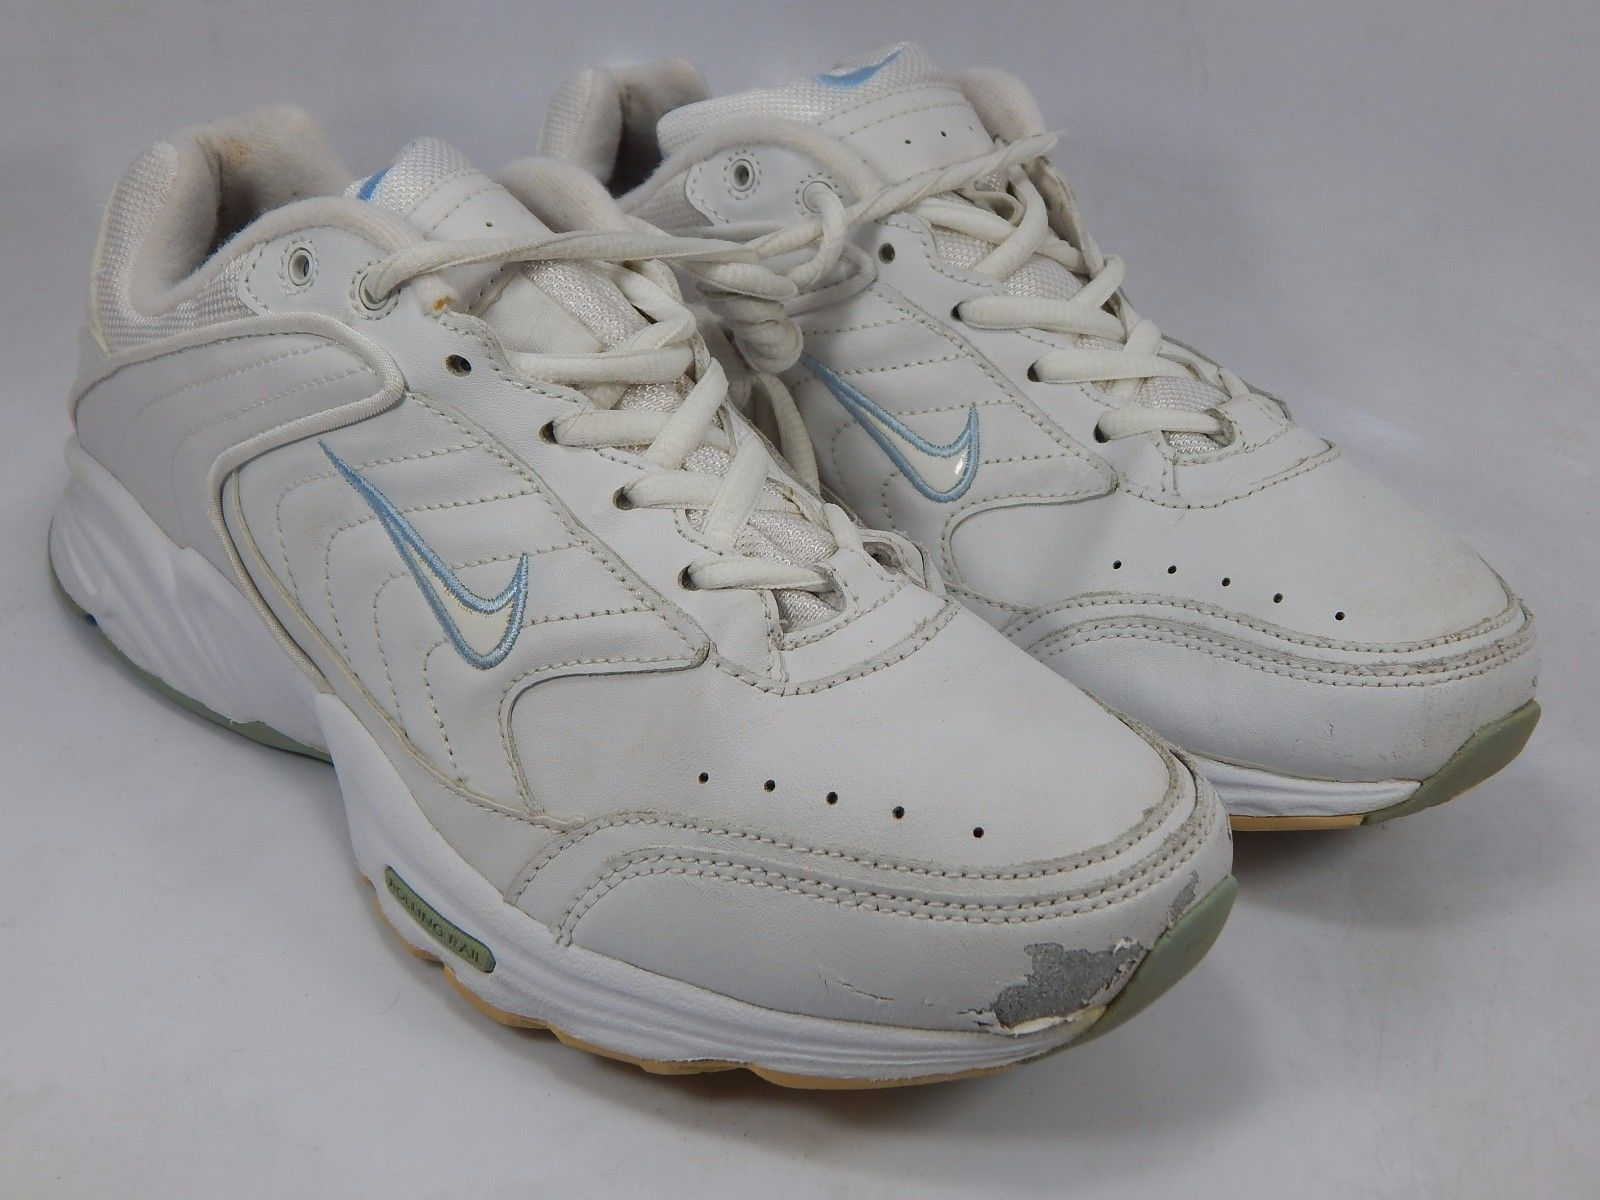 Nike 2004 Women's Walking Shoes Size US 9 M (B) EU 40.5 White 308699-112